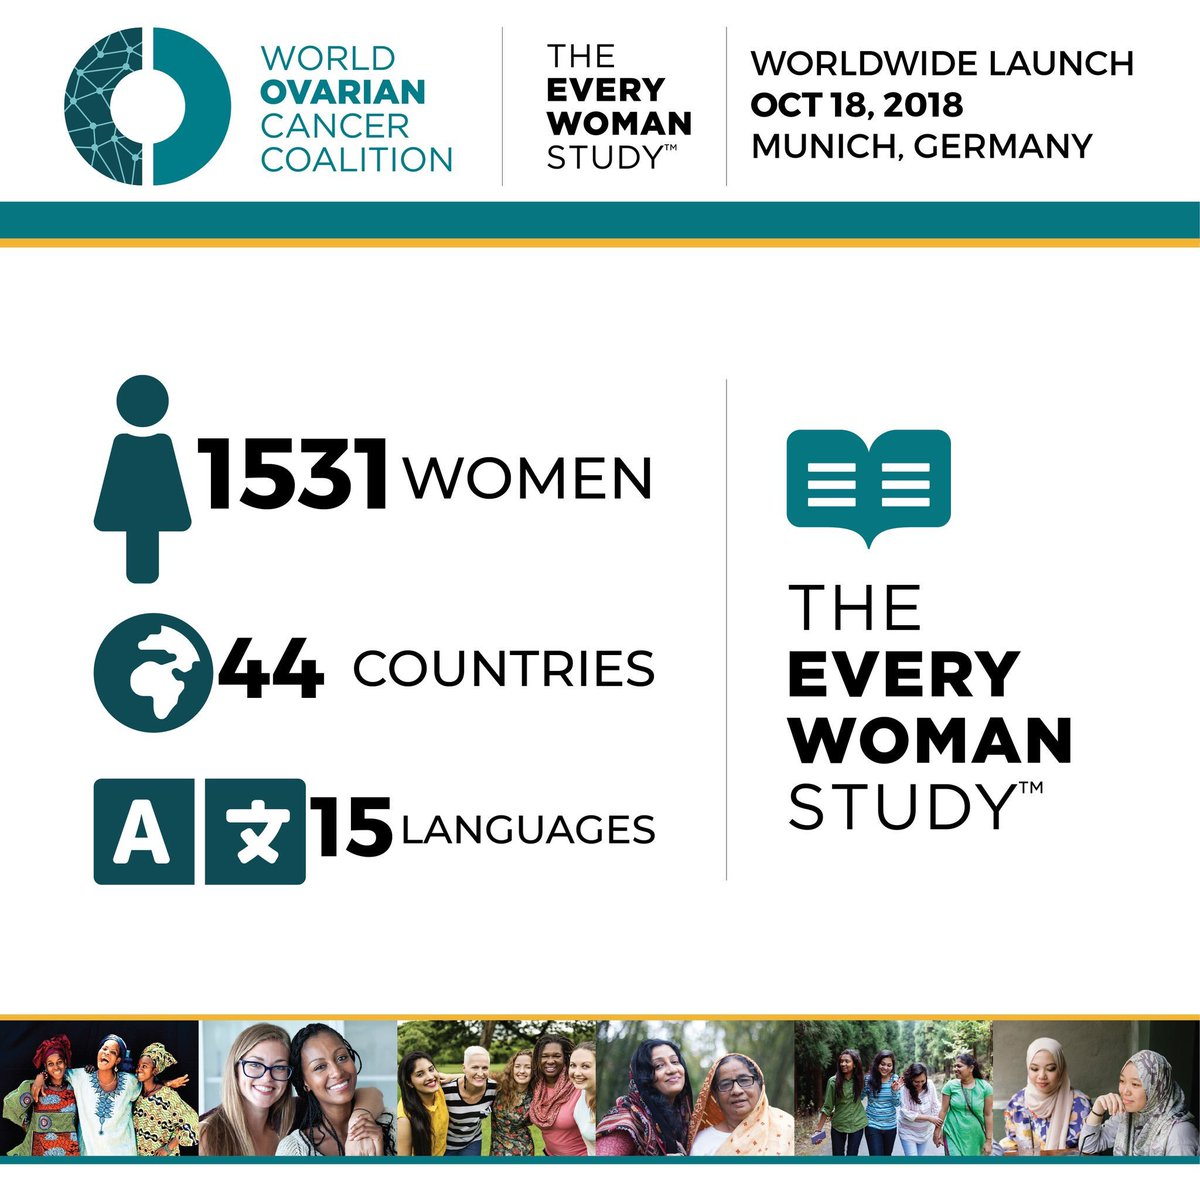 Sandy Rollman Ovarian Cancer Foundation On Twitter There Was A Lot Of Shock To The Everywomanstudy Results There Was Very Little Shock Felt By Ovarian Cancer Survivors This Highlights The Urgent Need